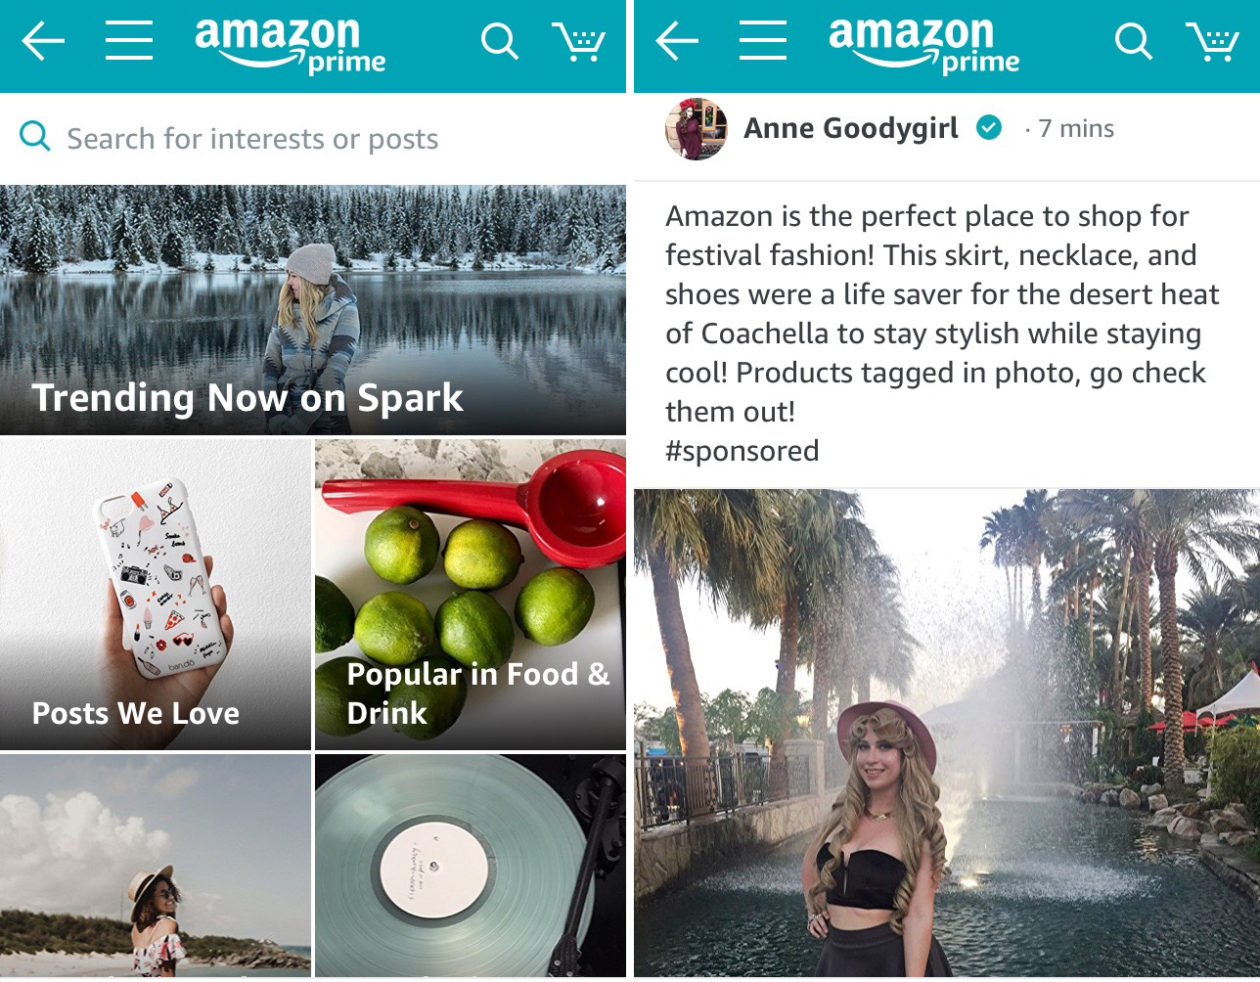 Facebook's Experimenting with eBay 'Daily Deals' in Marketplace   Social Media Today